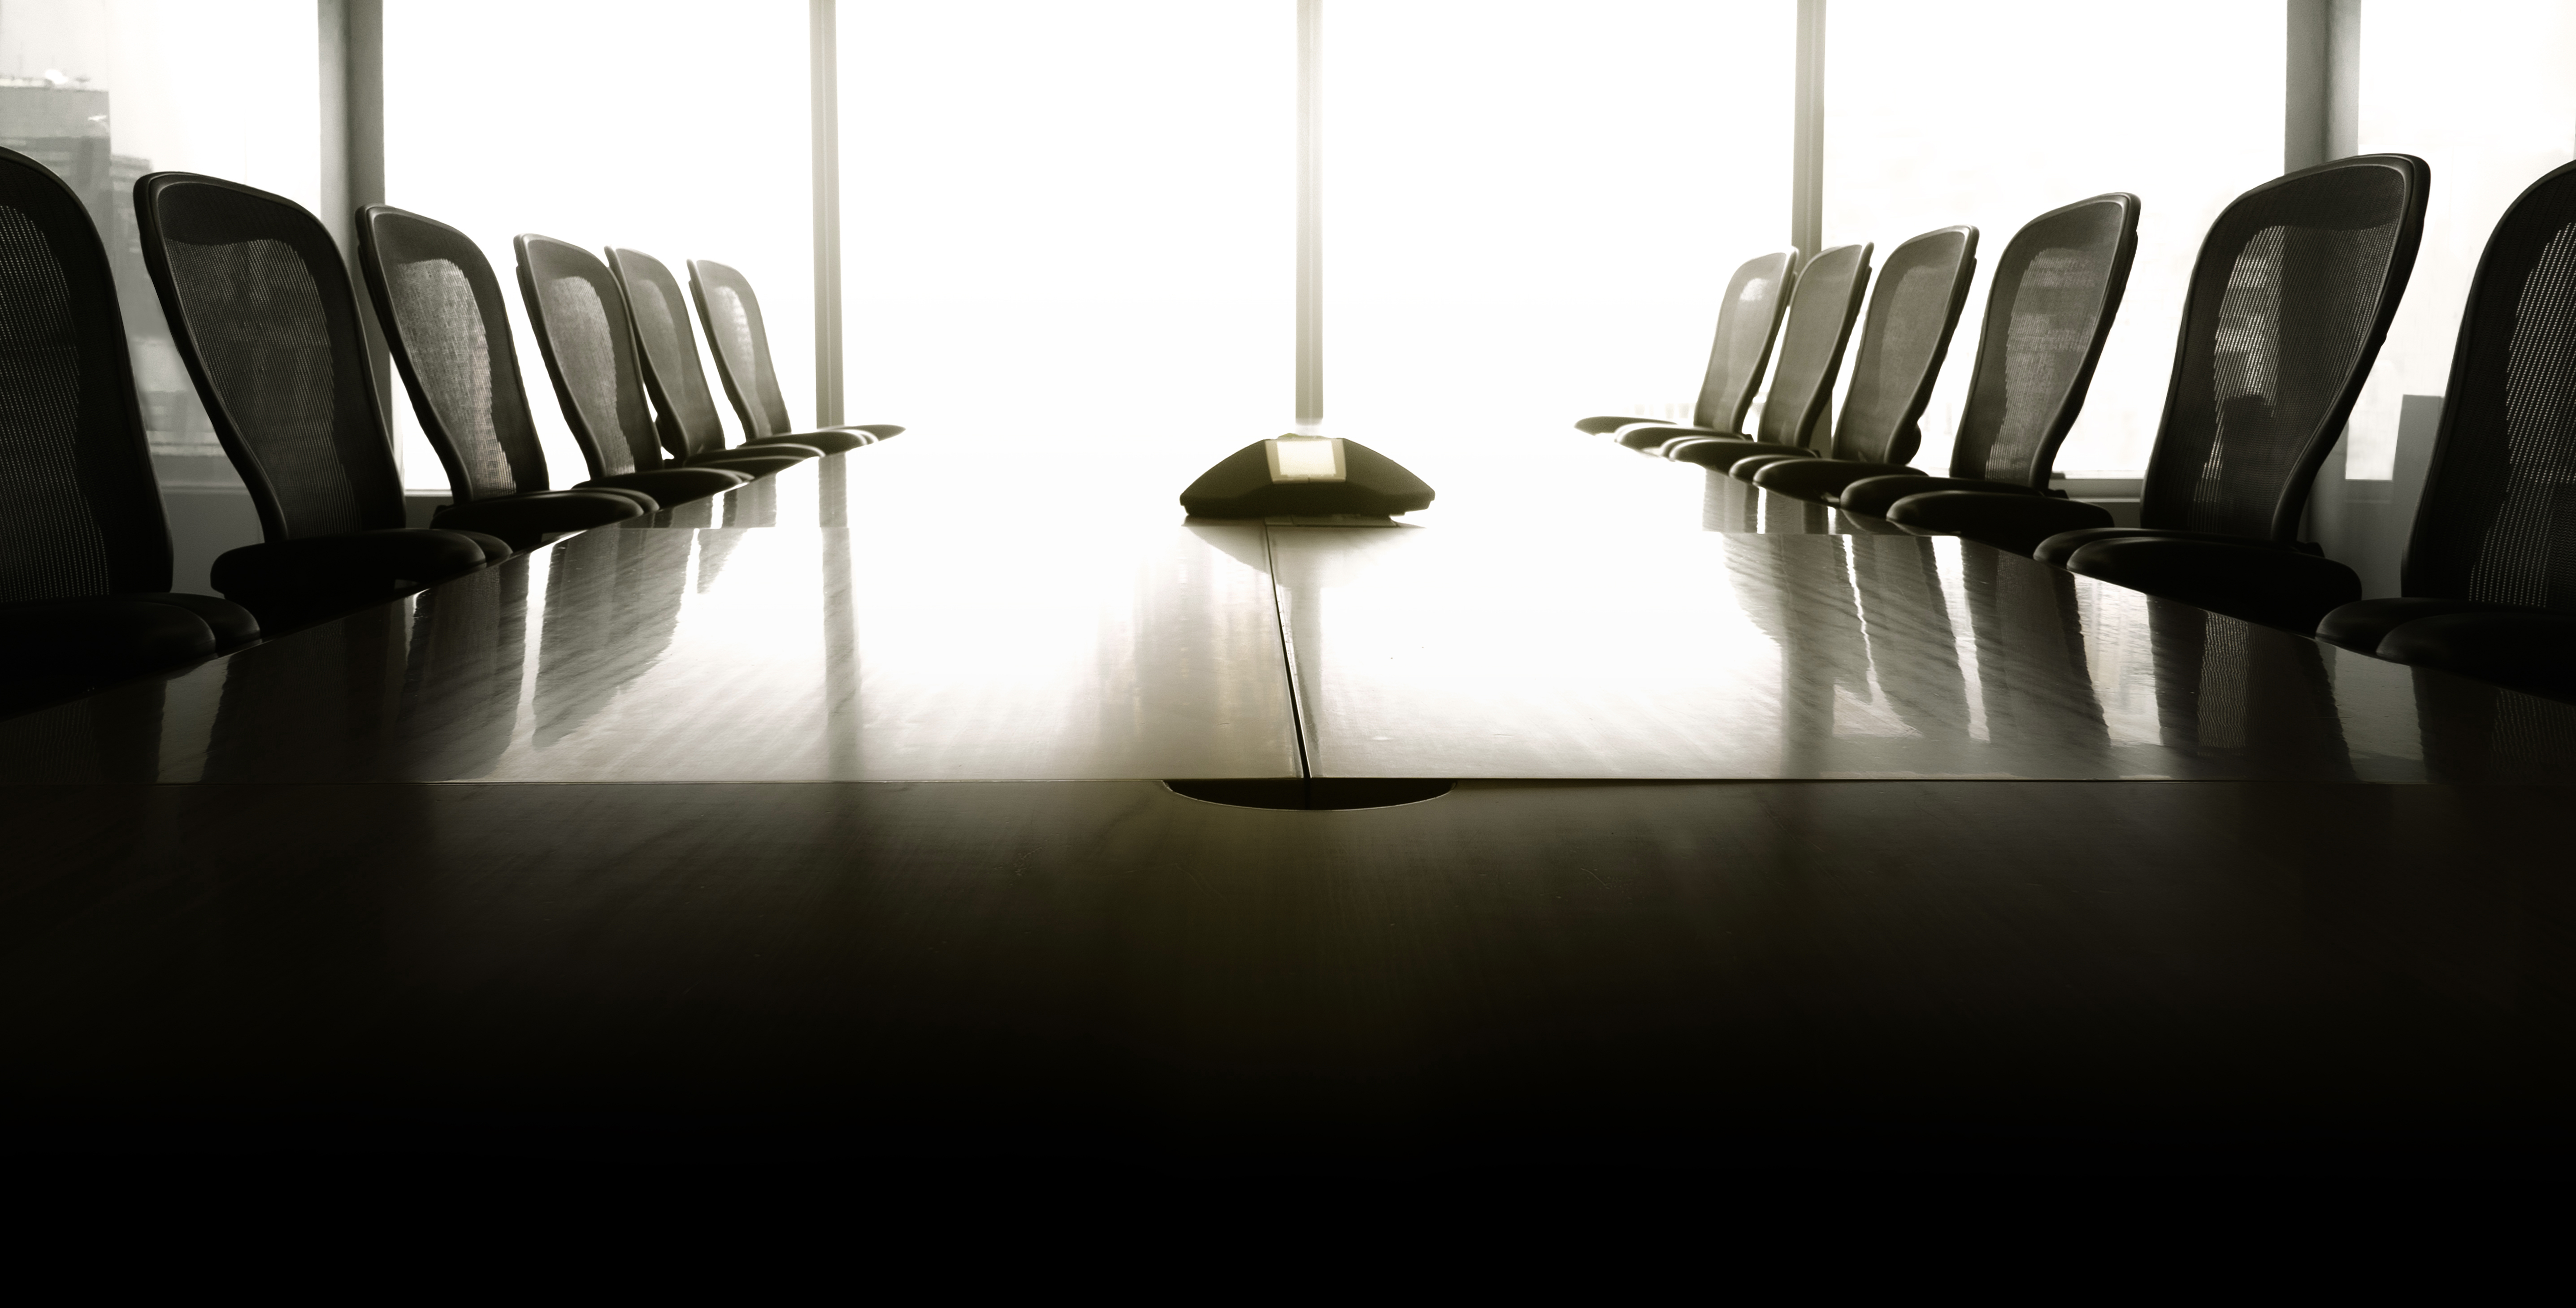 How Investment Bankers Can Thrive Even Without In-Person Meetings